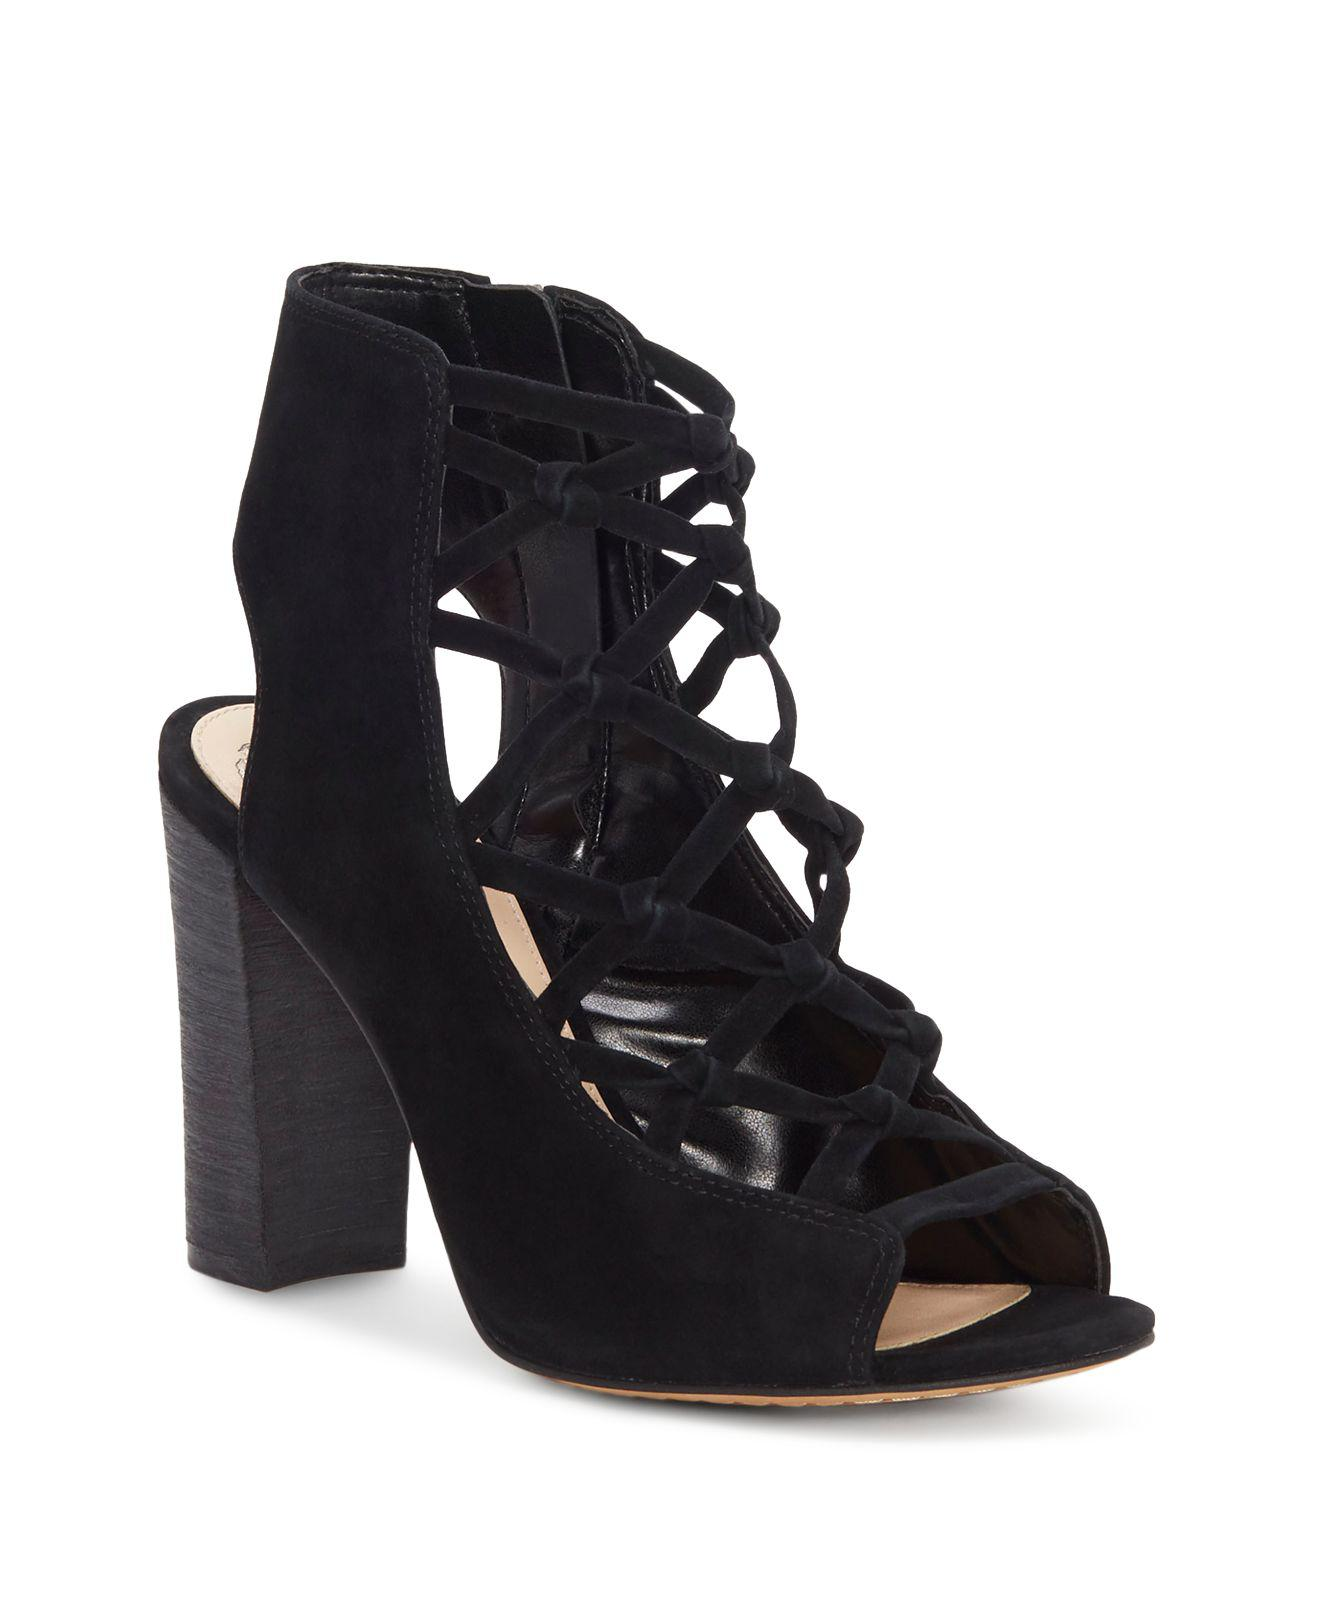 Clearance Low Price Fee Shipping Vince Camuto Women's Stesha Caged Suede Block Heel Sandals Discount For Sale Buy Cheap Deals Cheap Real Authentic Free Shipping Footlocker mLKGmNDRTe